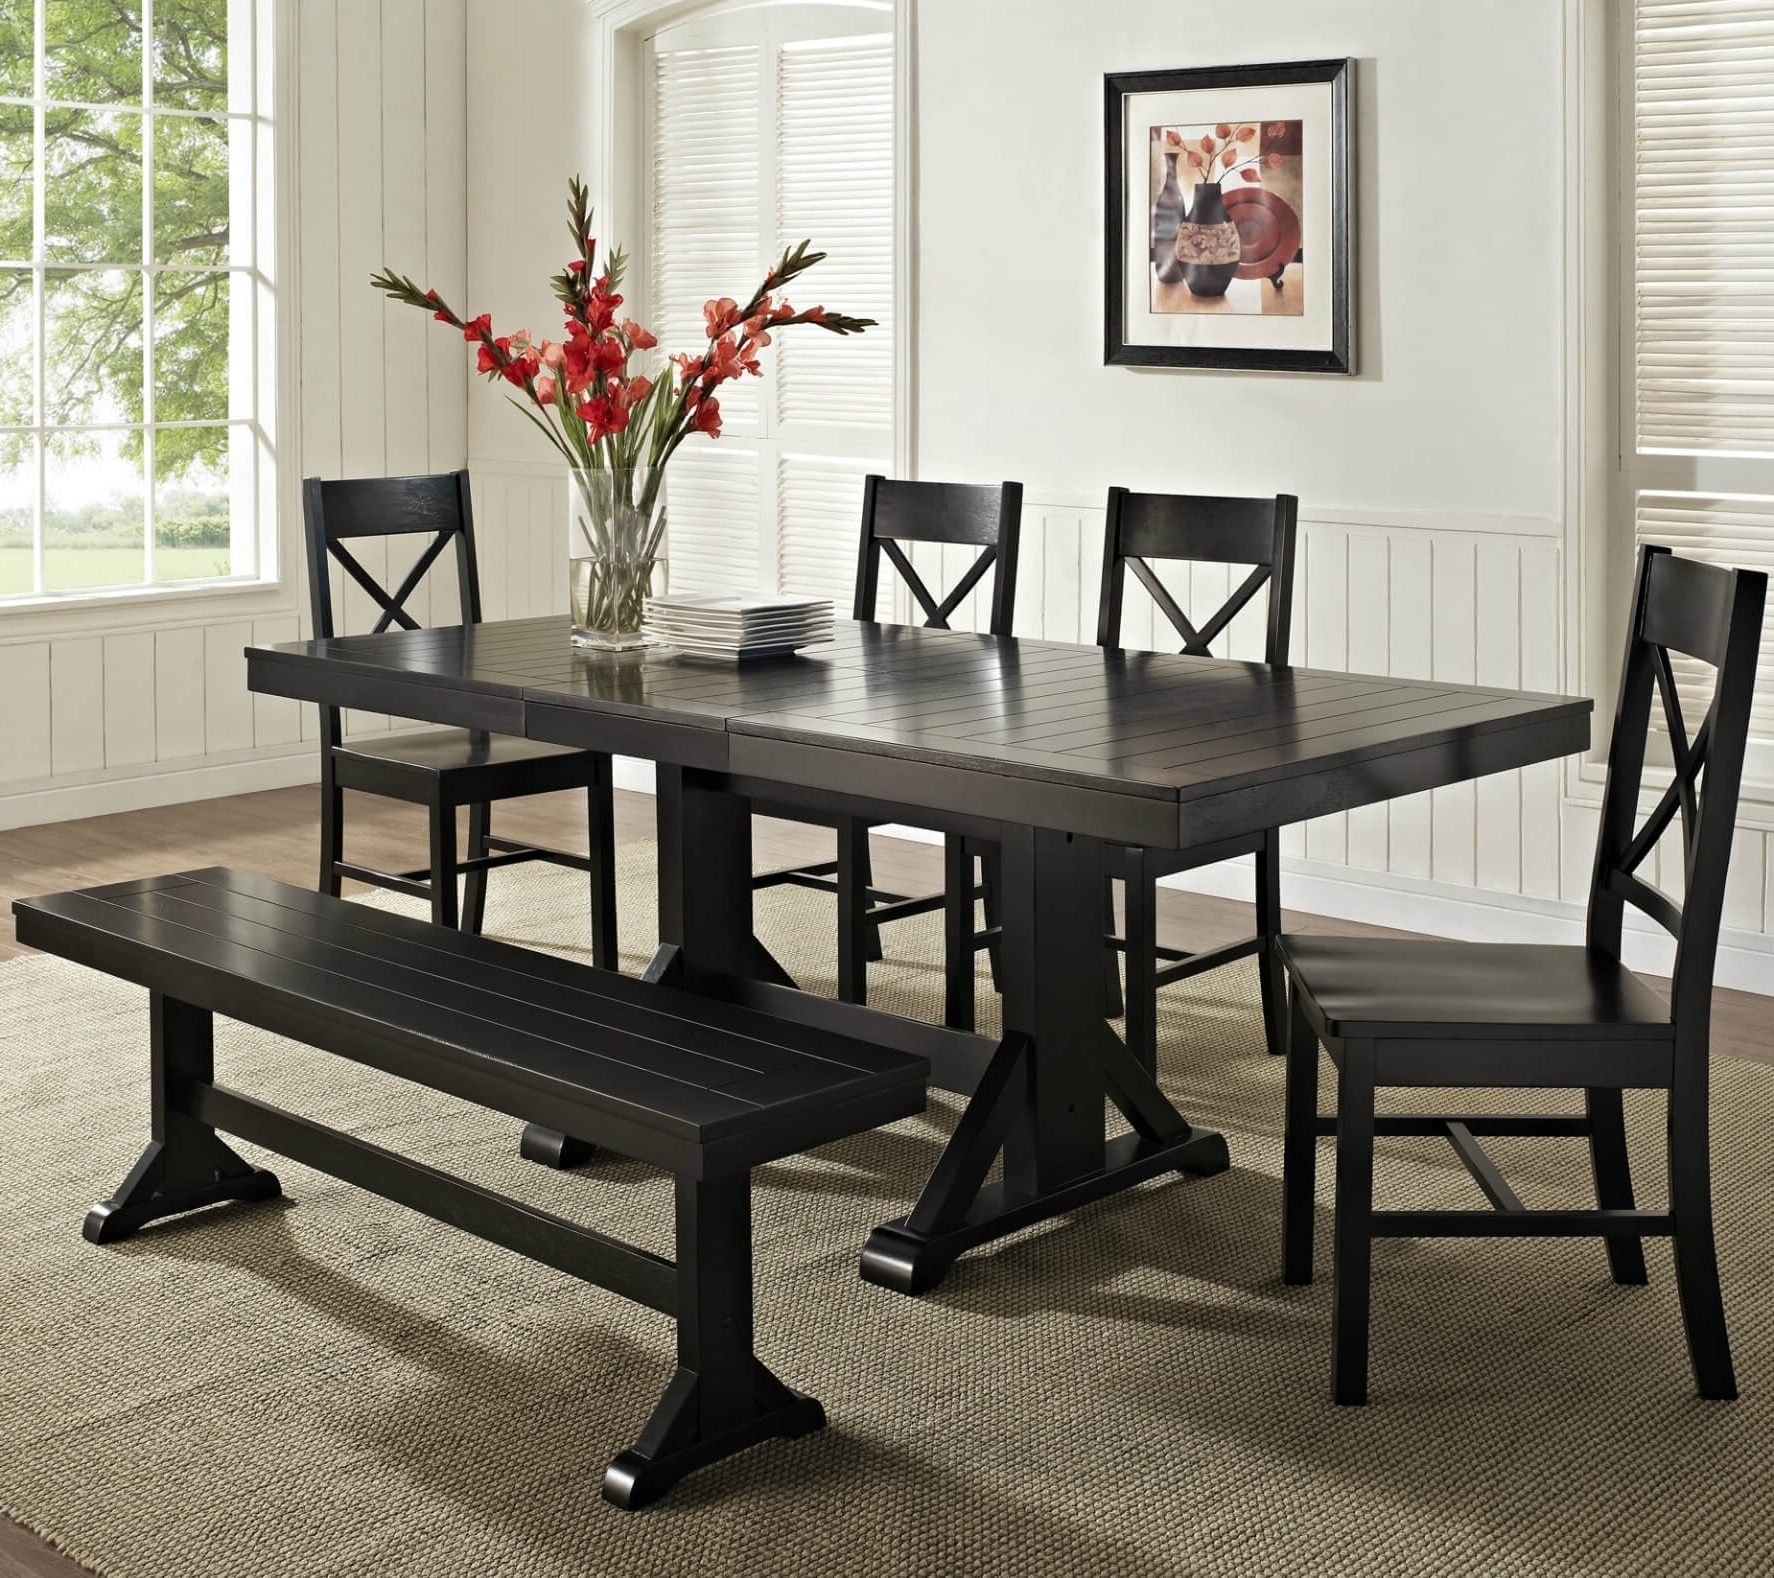 Small Dining Tables And Bench Sets With Regard To Recent 26 Dining Room Sets (Big And Small) With Bench Seating (2018) (View 22 of 25)